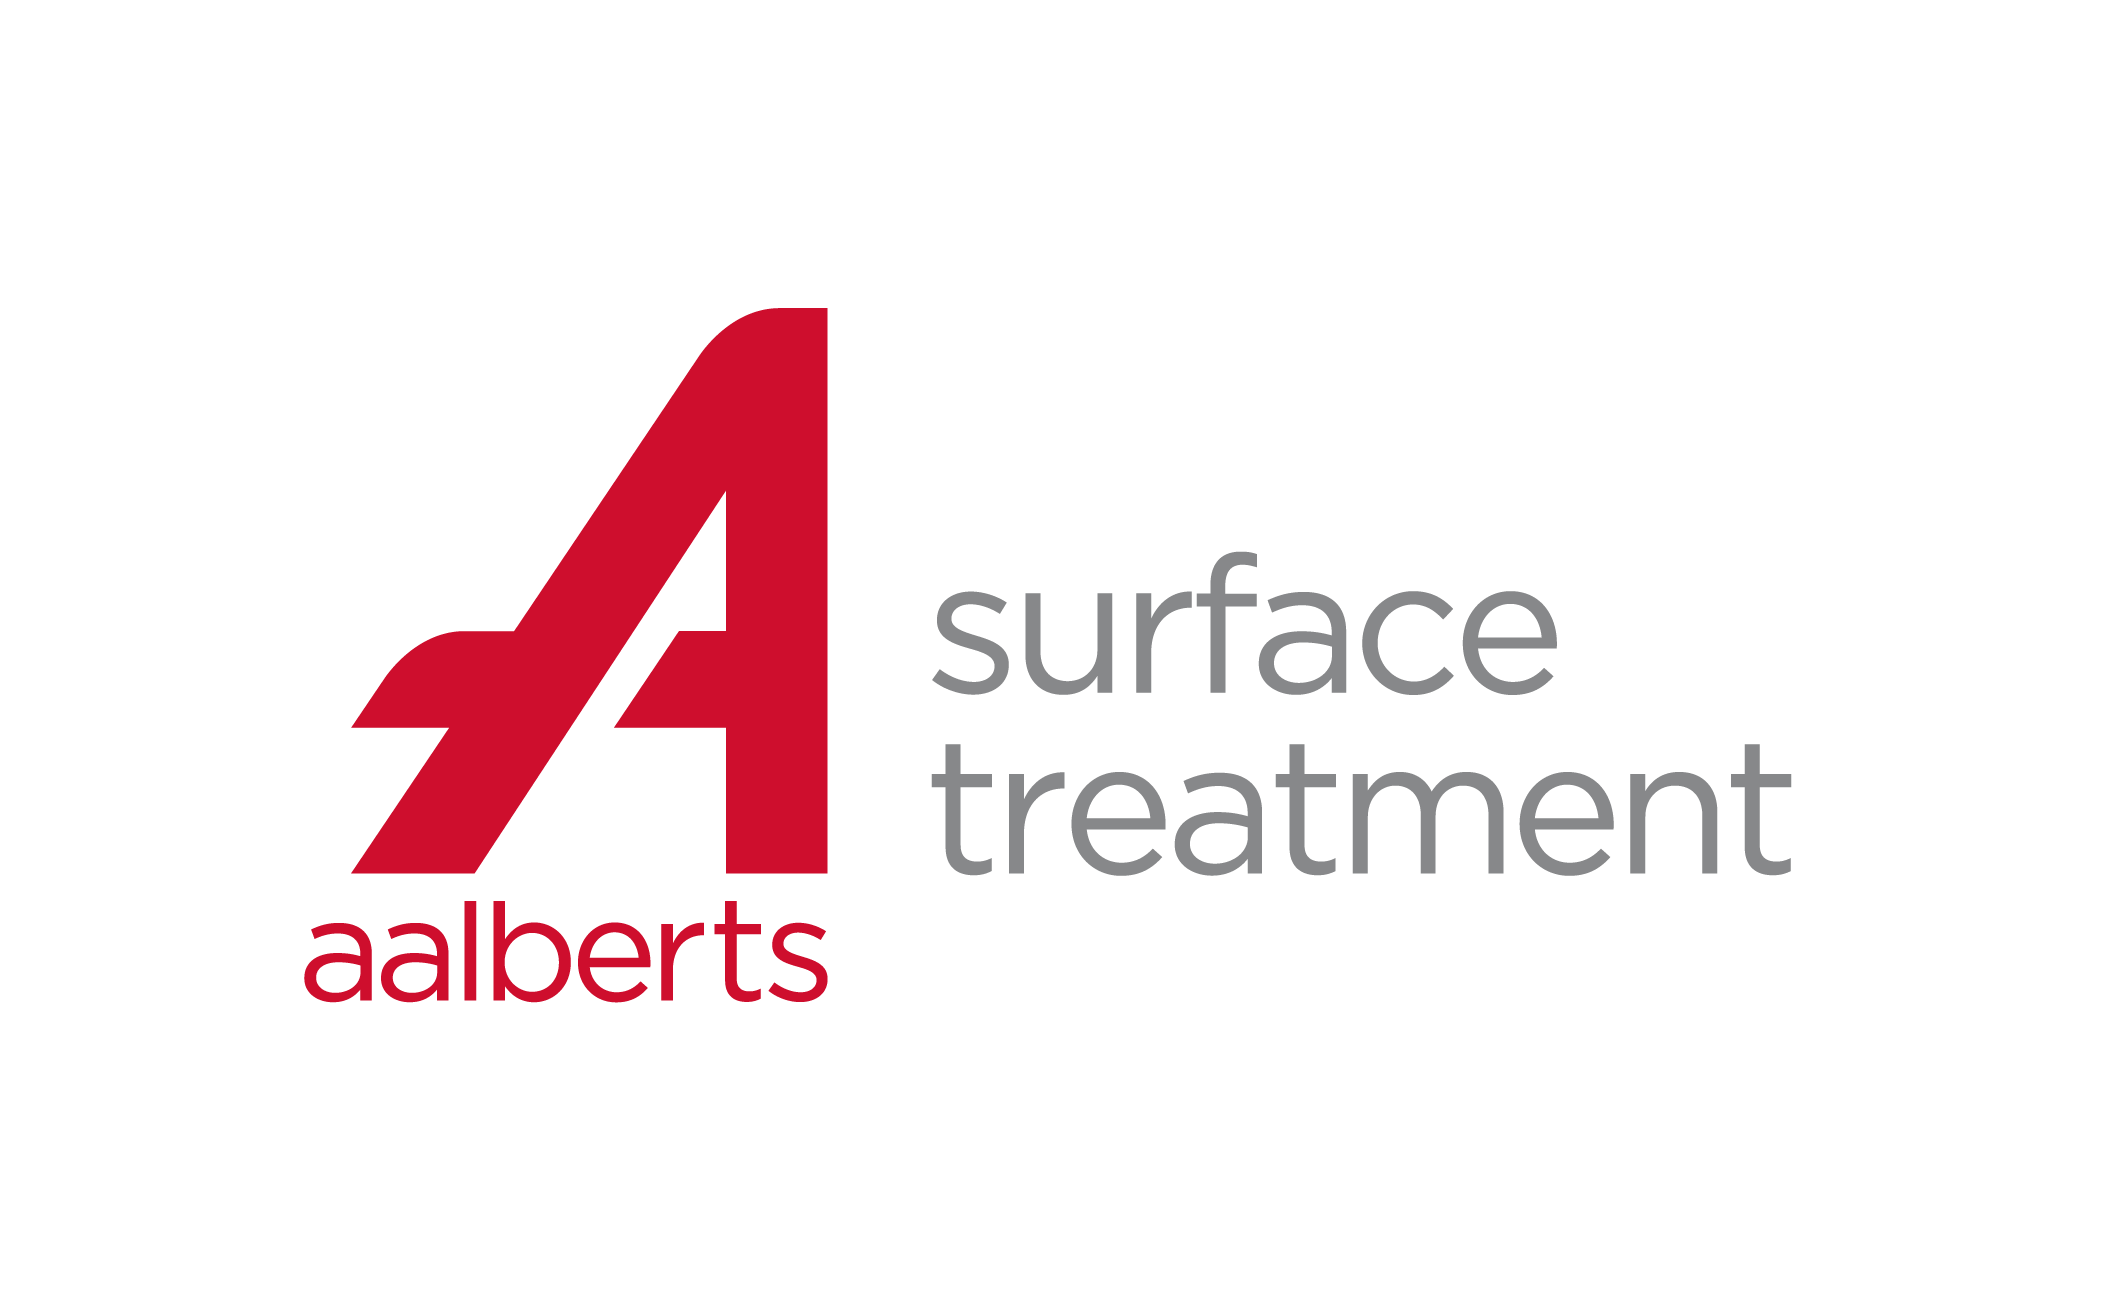 Aalberts surface treatment - PNG (RGB) - red.png